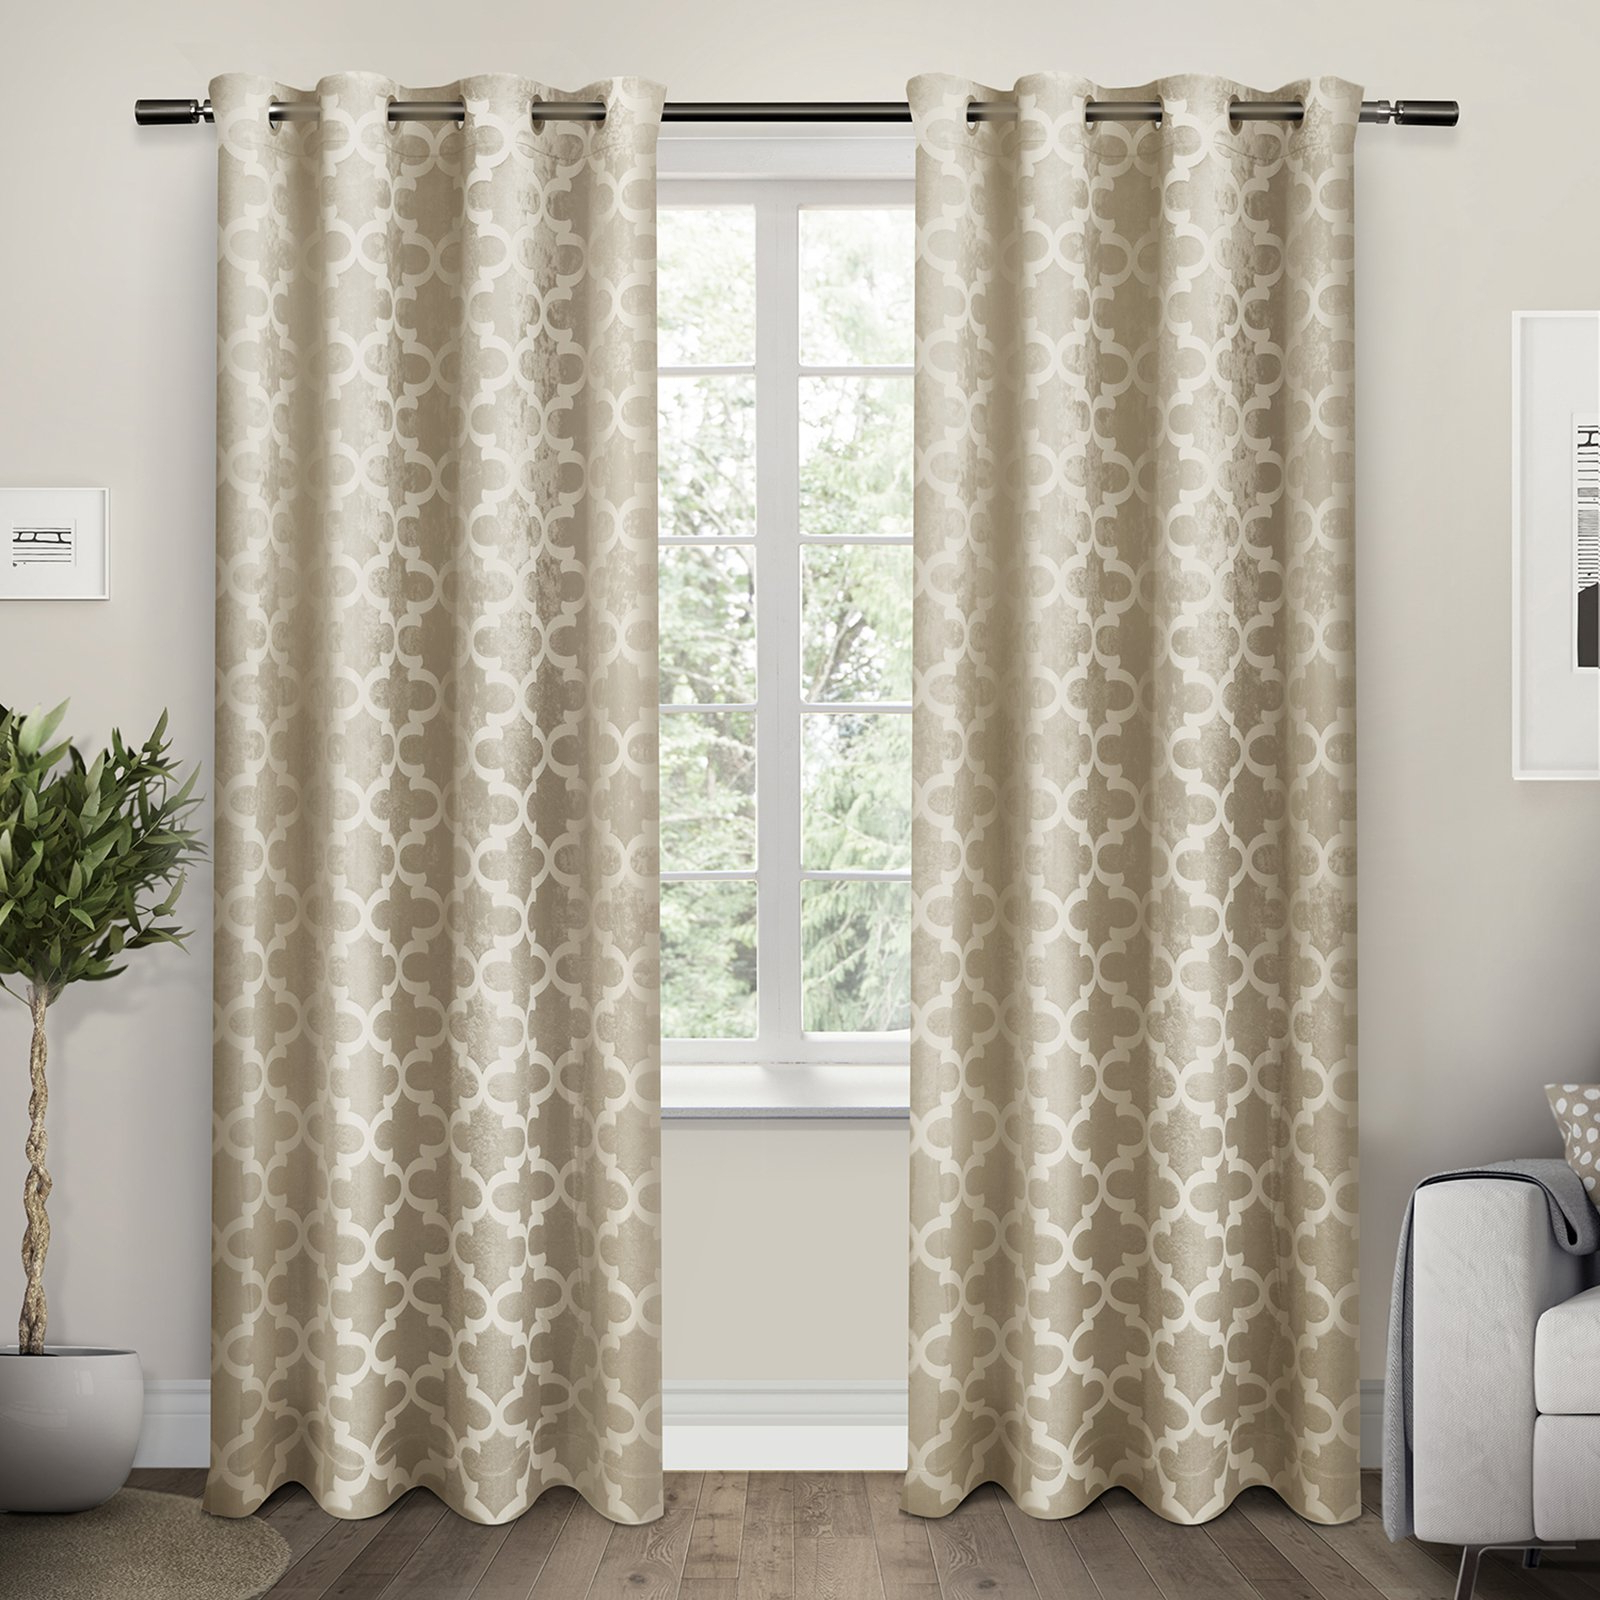 Woven Blackout Curtain Panel Pairs With Grommet Top Intended For Current Cartago Woven Blackout Grommet Top Window Curtain Panel Pair (View 10 of 20)